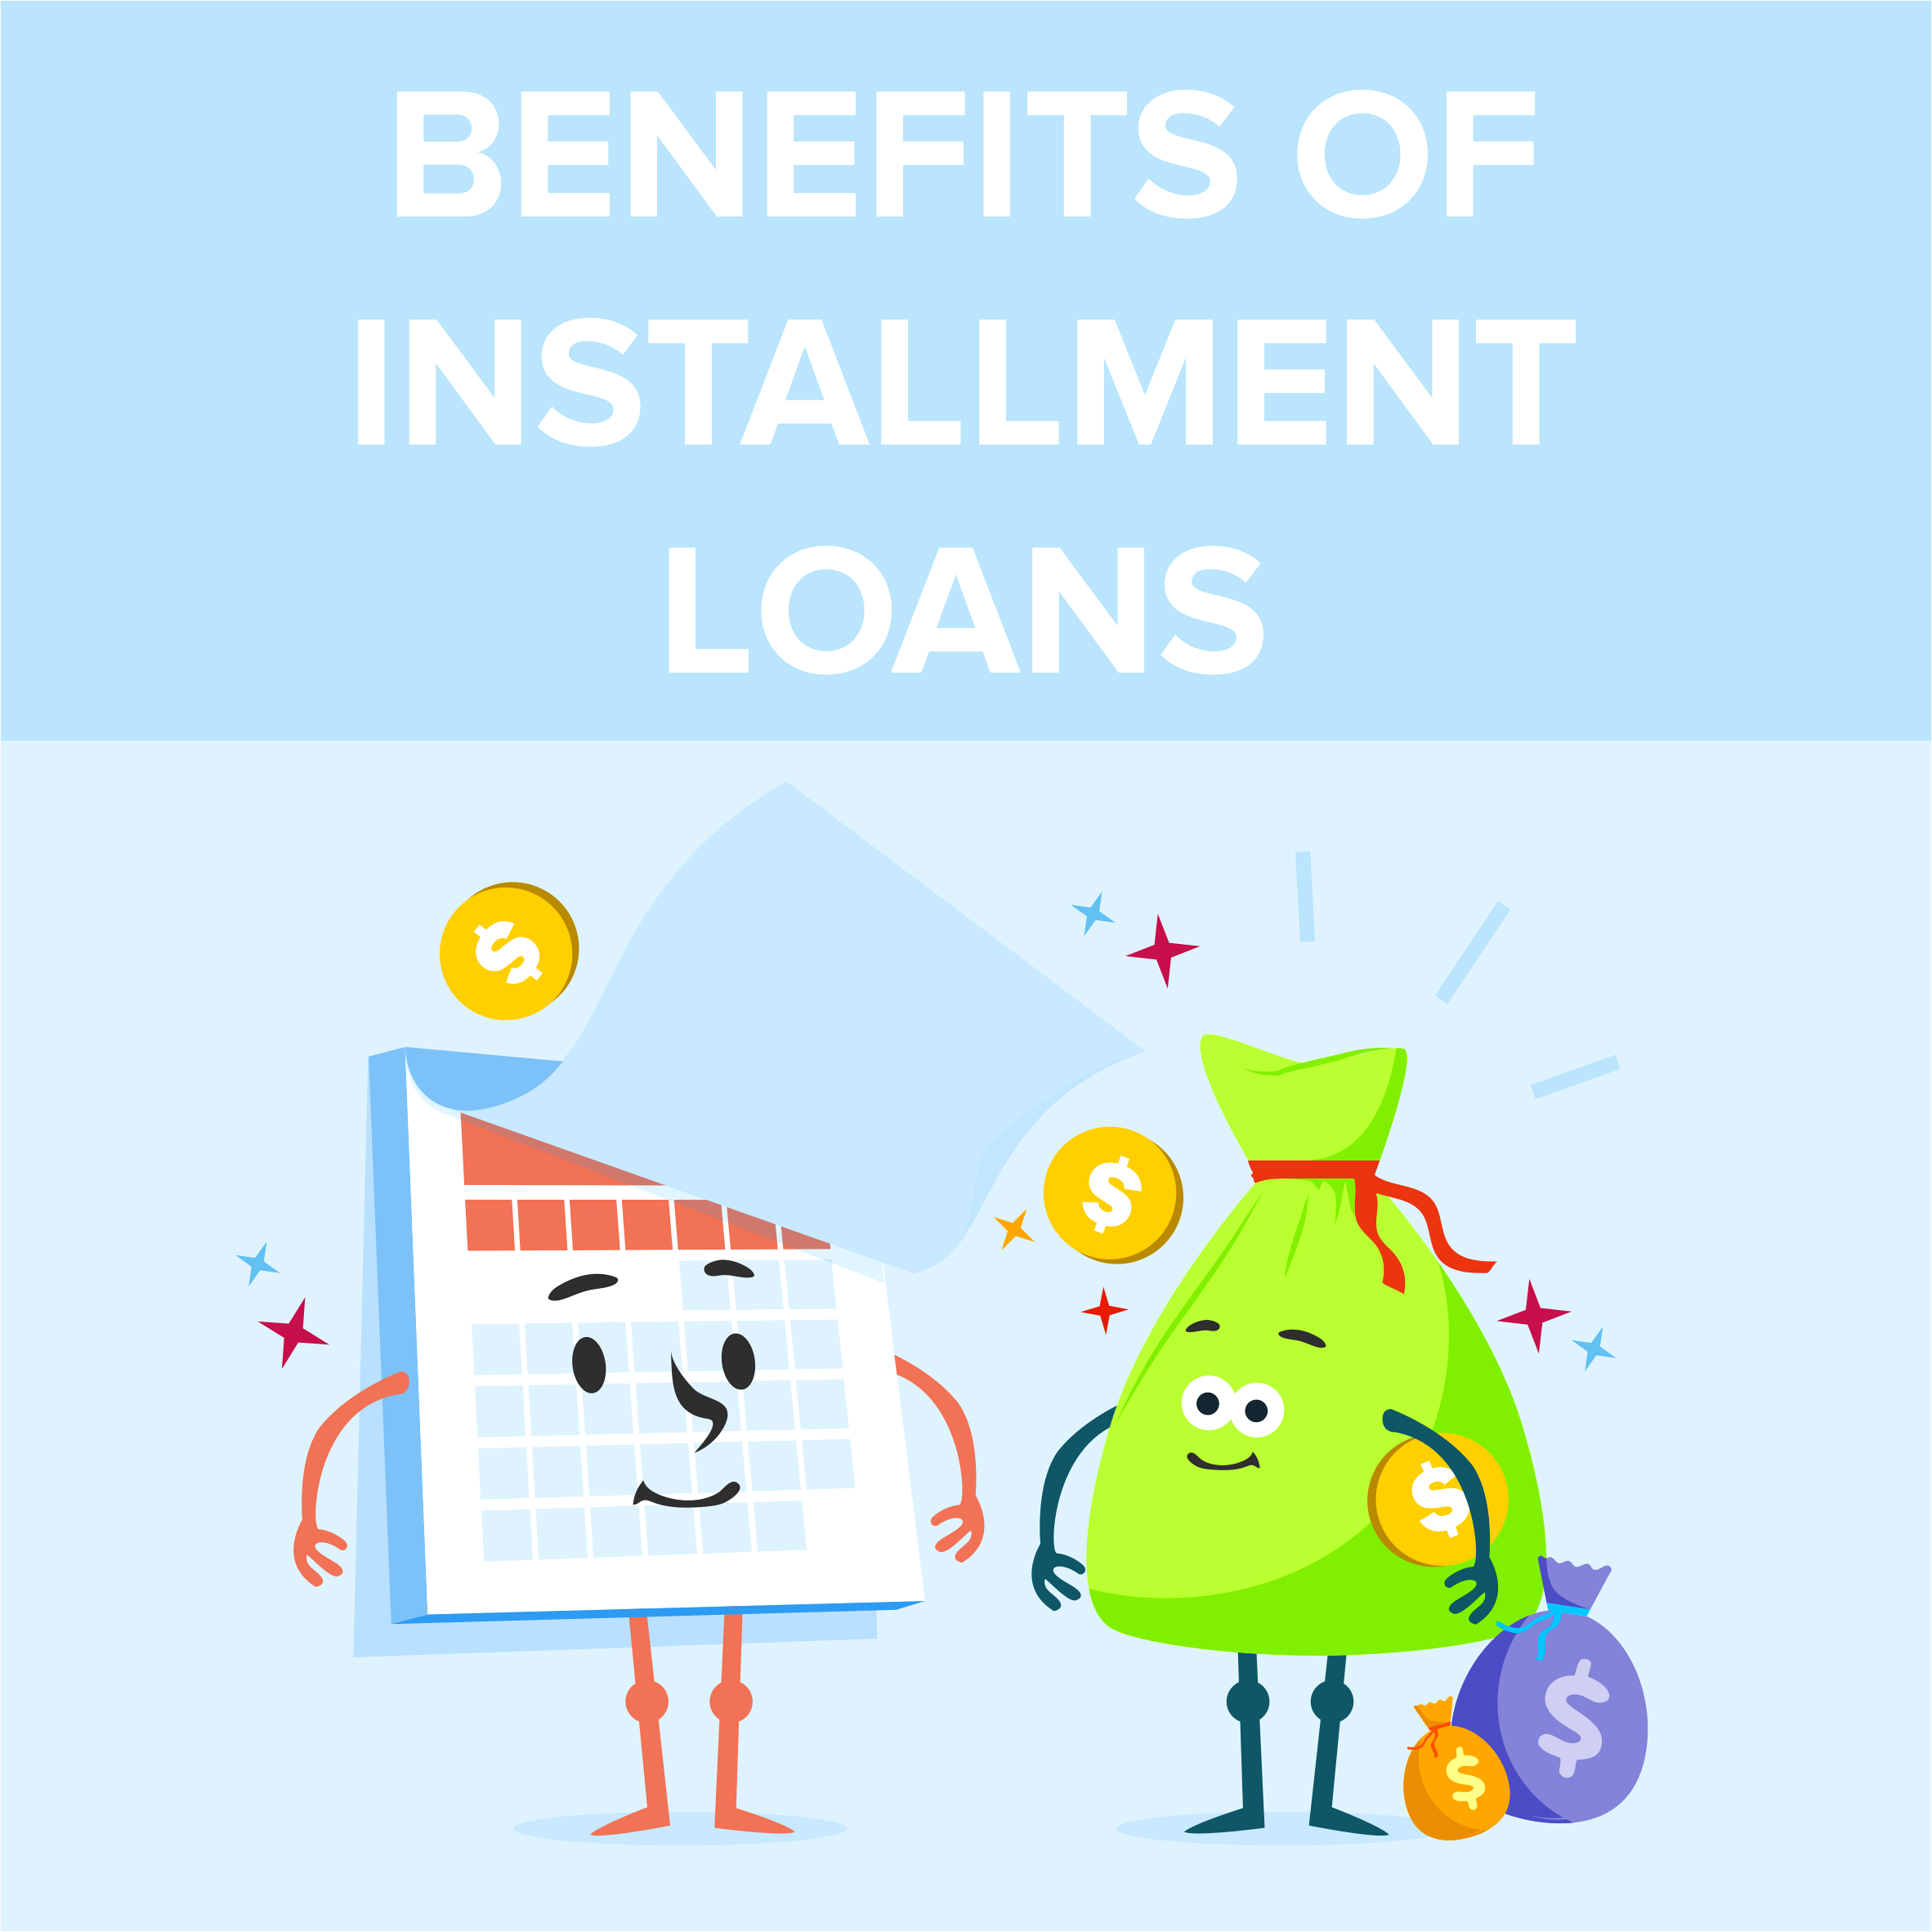 Benefits of Installment Loans